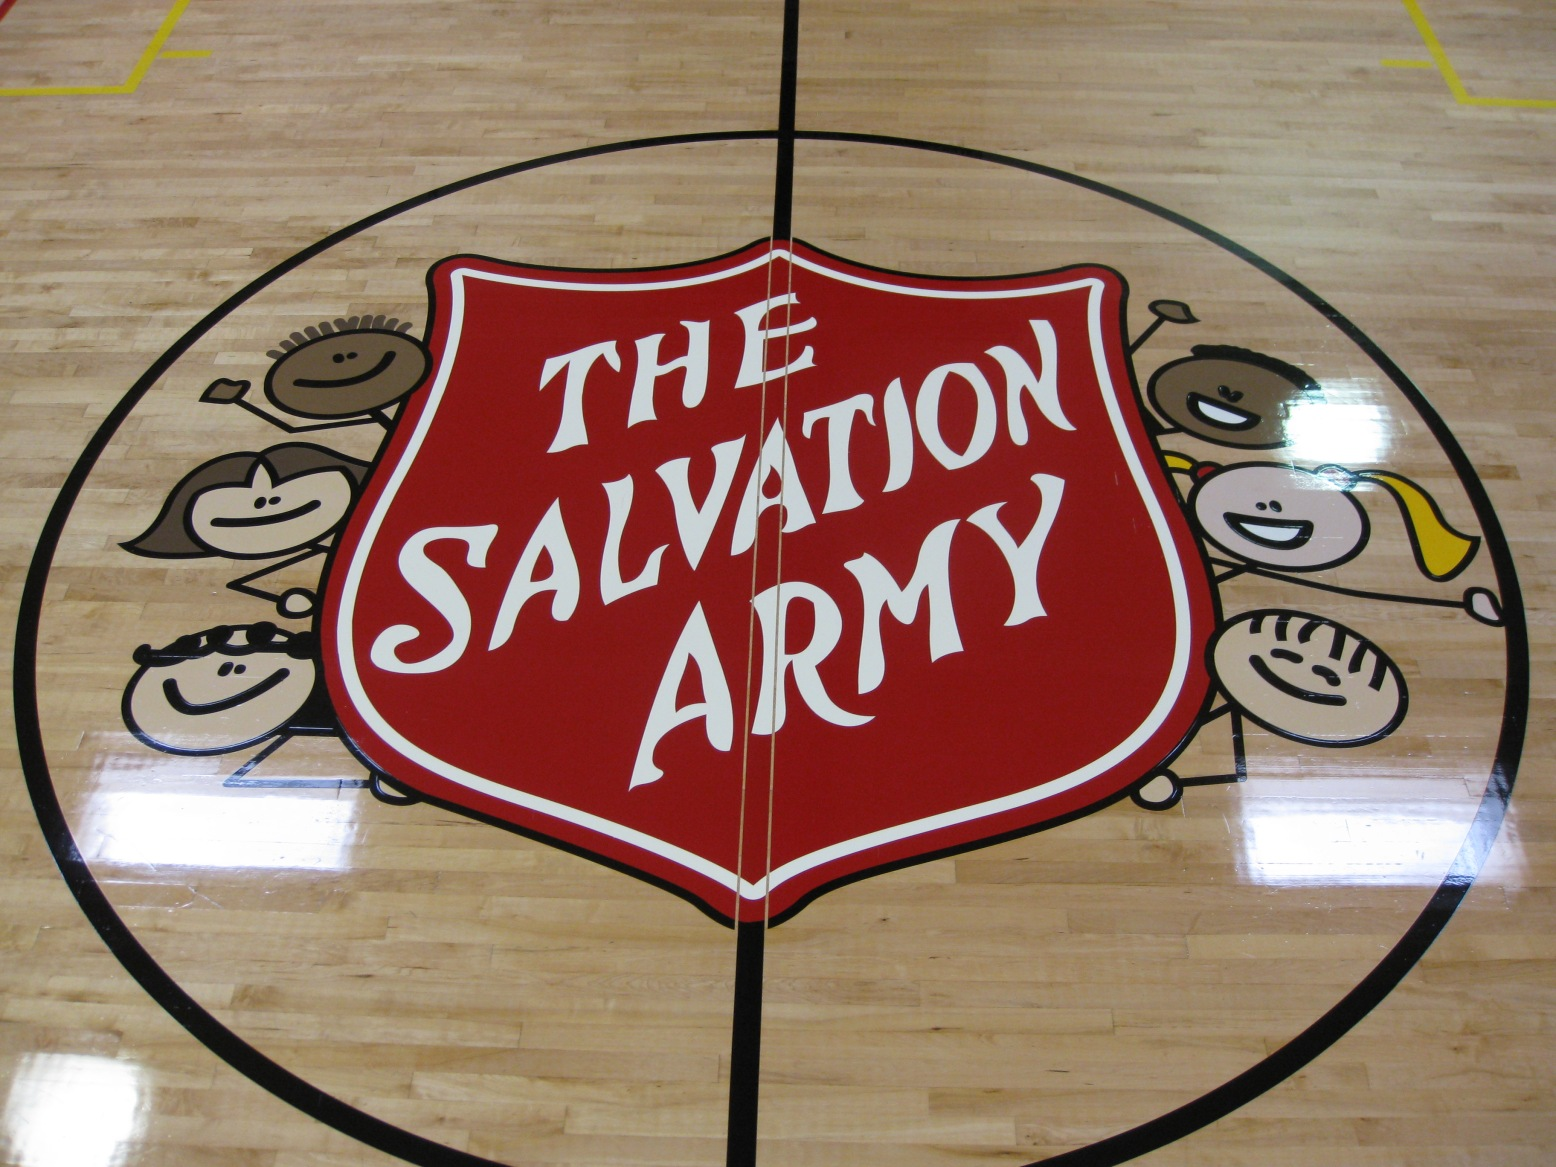 315 Salvation Army - South Los Angeles - Pics 001